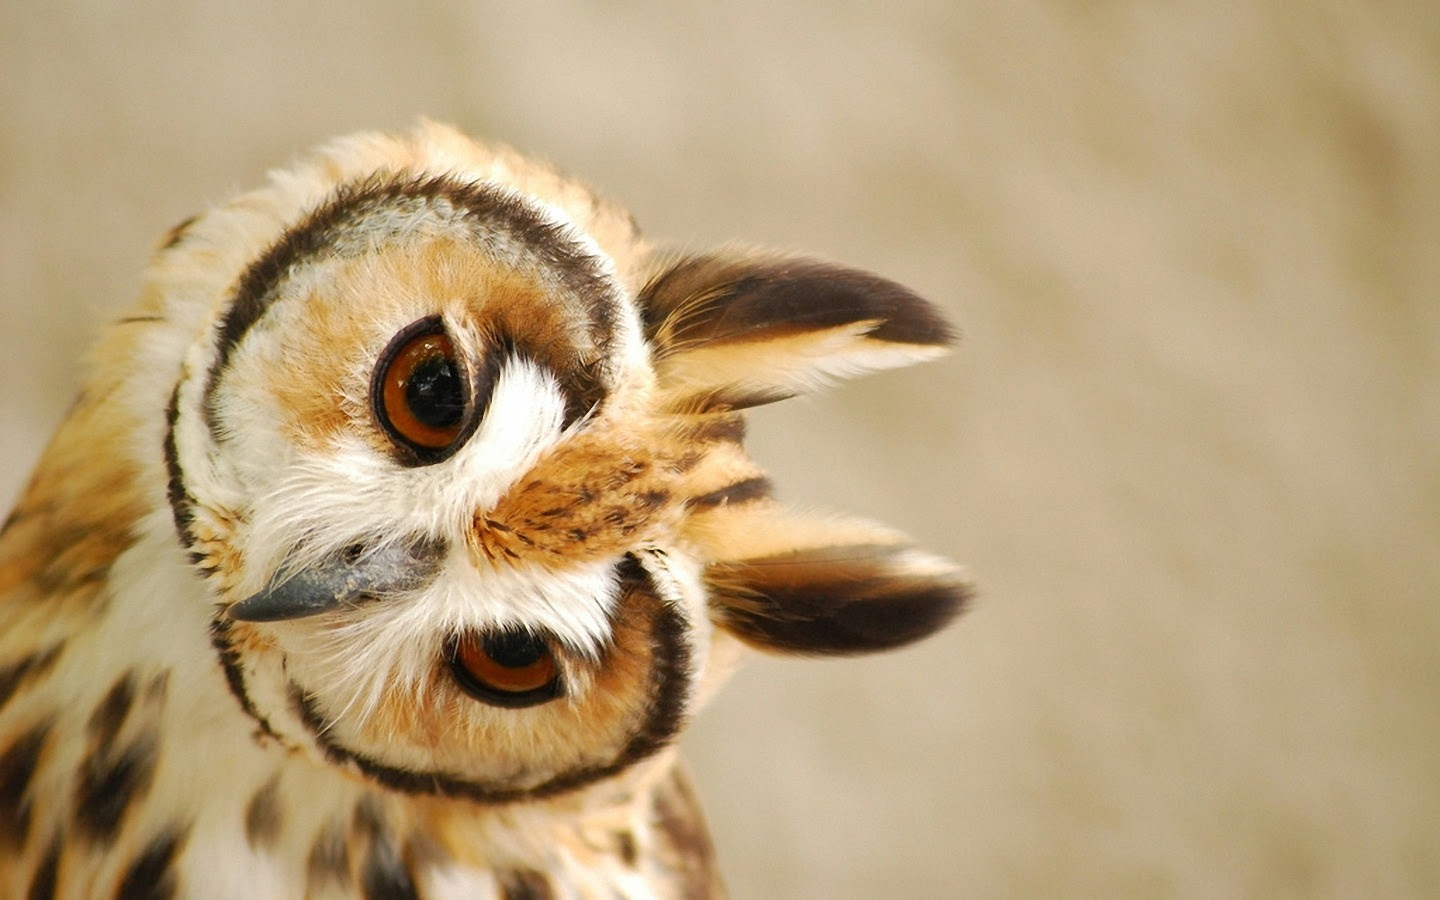 Cute Owl Wallpaper 1440x900 45988